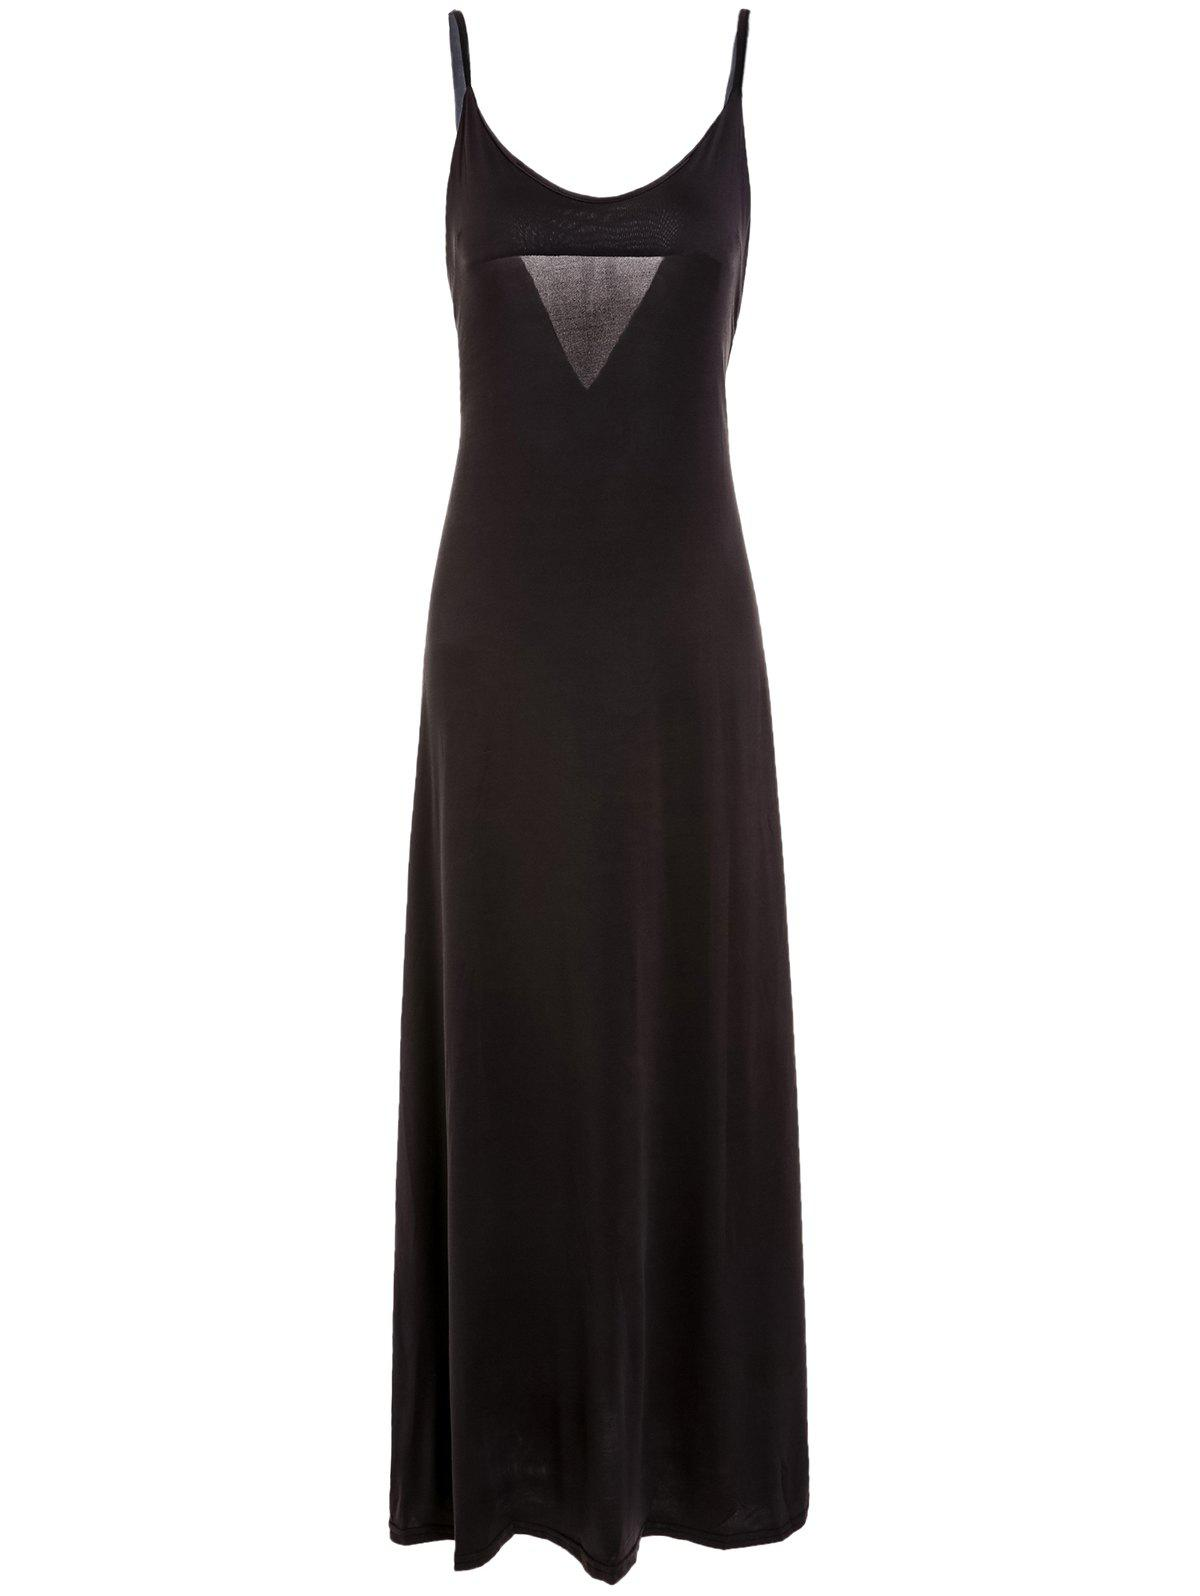 V-Neck Spaghetti Strap Backless Solid Color Maxi Dress - DEEP BROWN XL